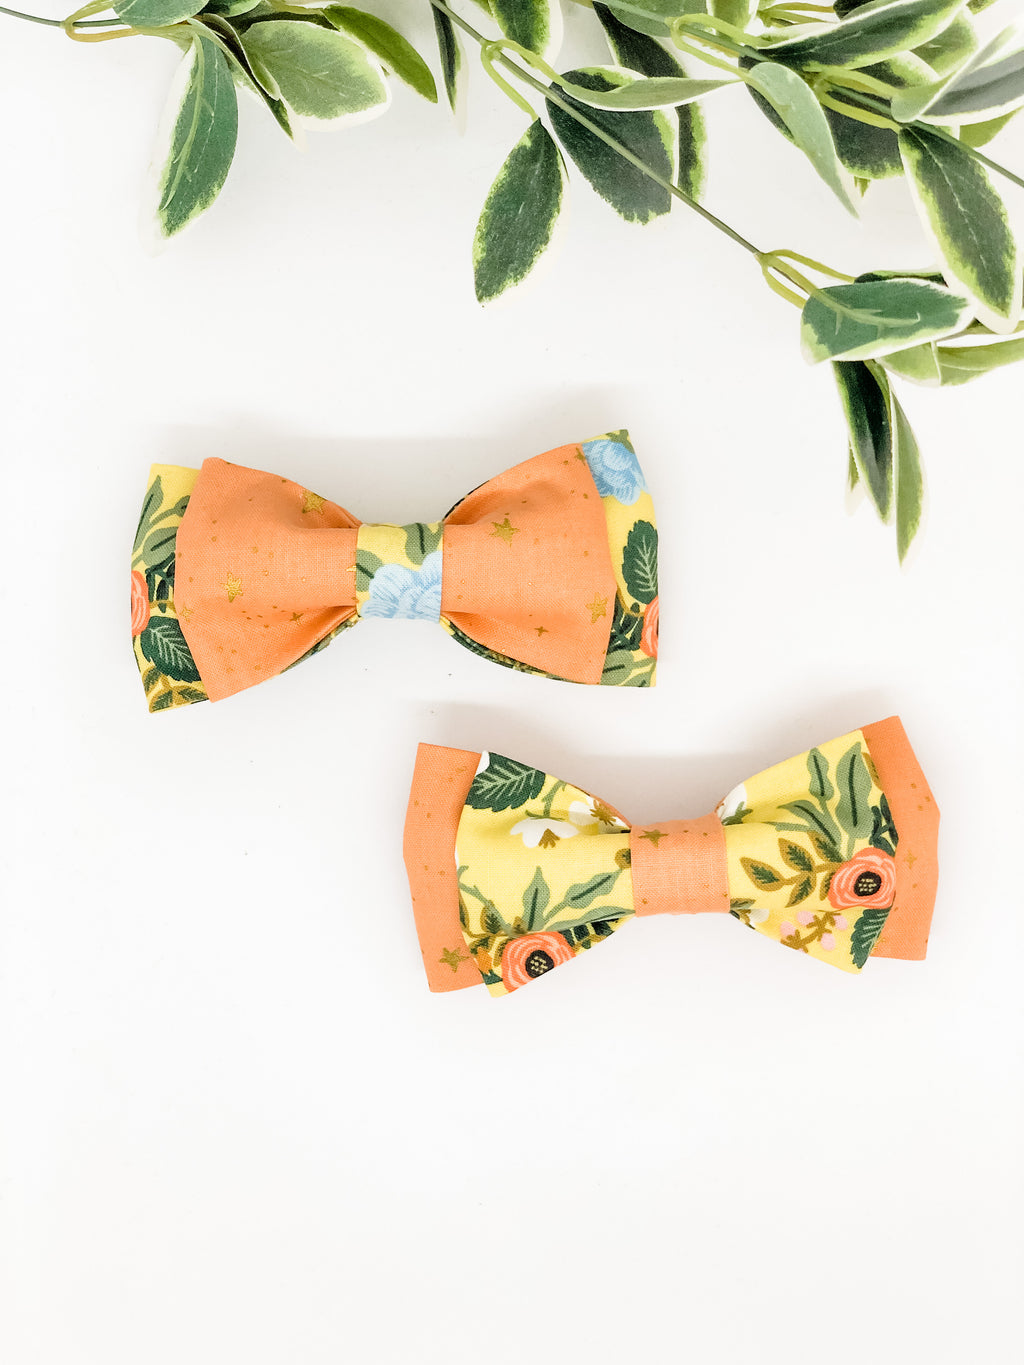 Double Dog Bow tie | Wild Bloom 2.0 x Peach Stars